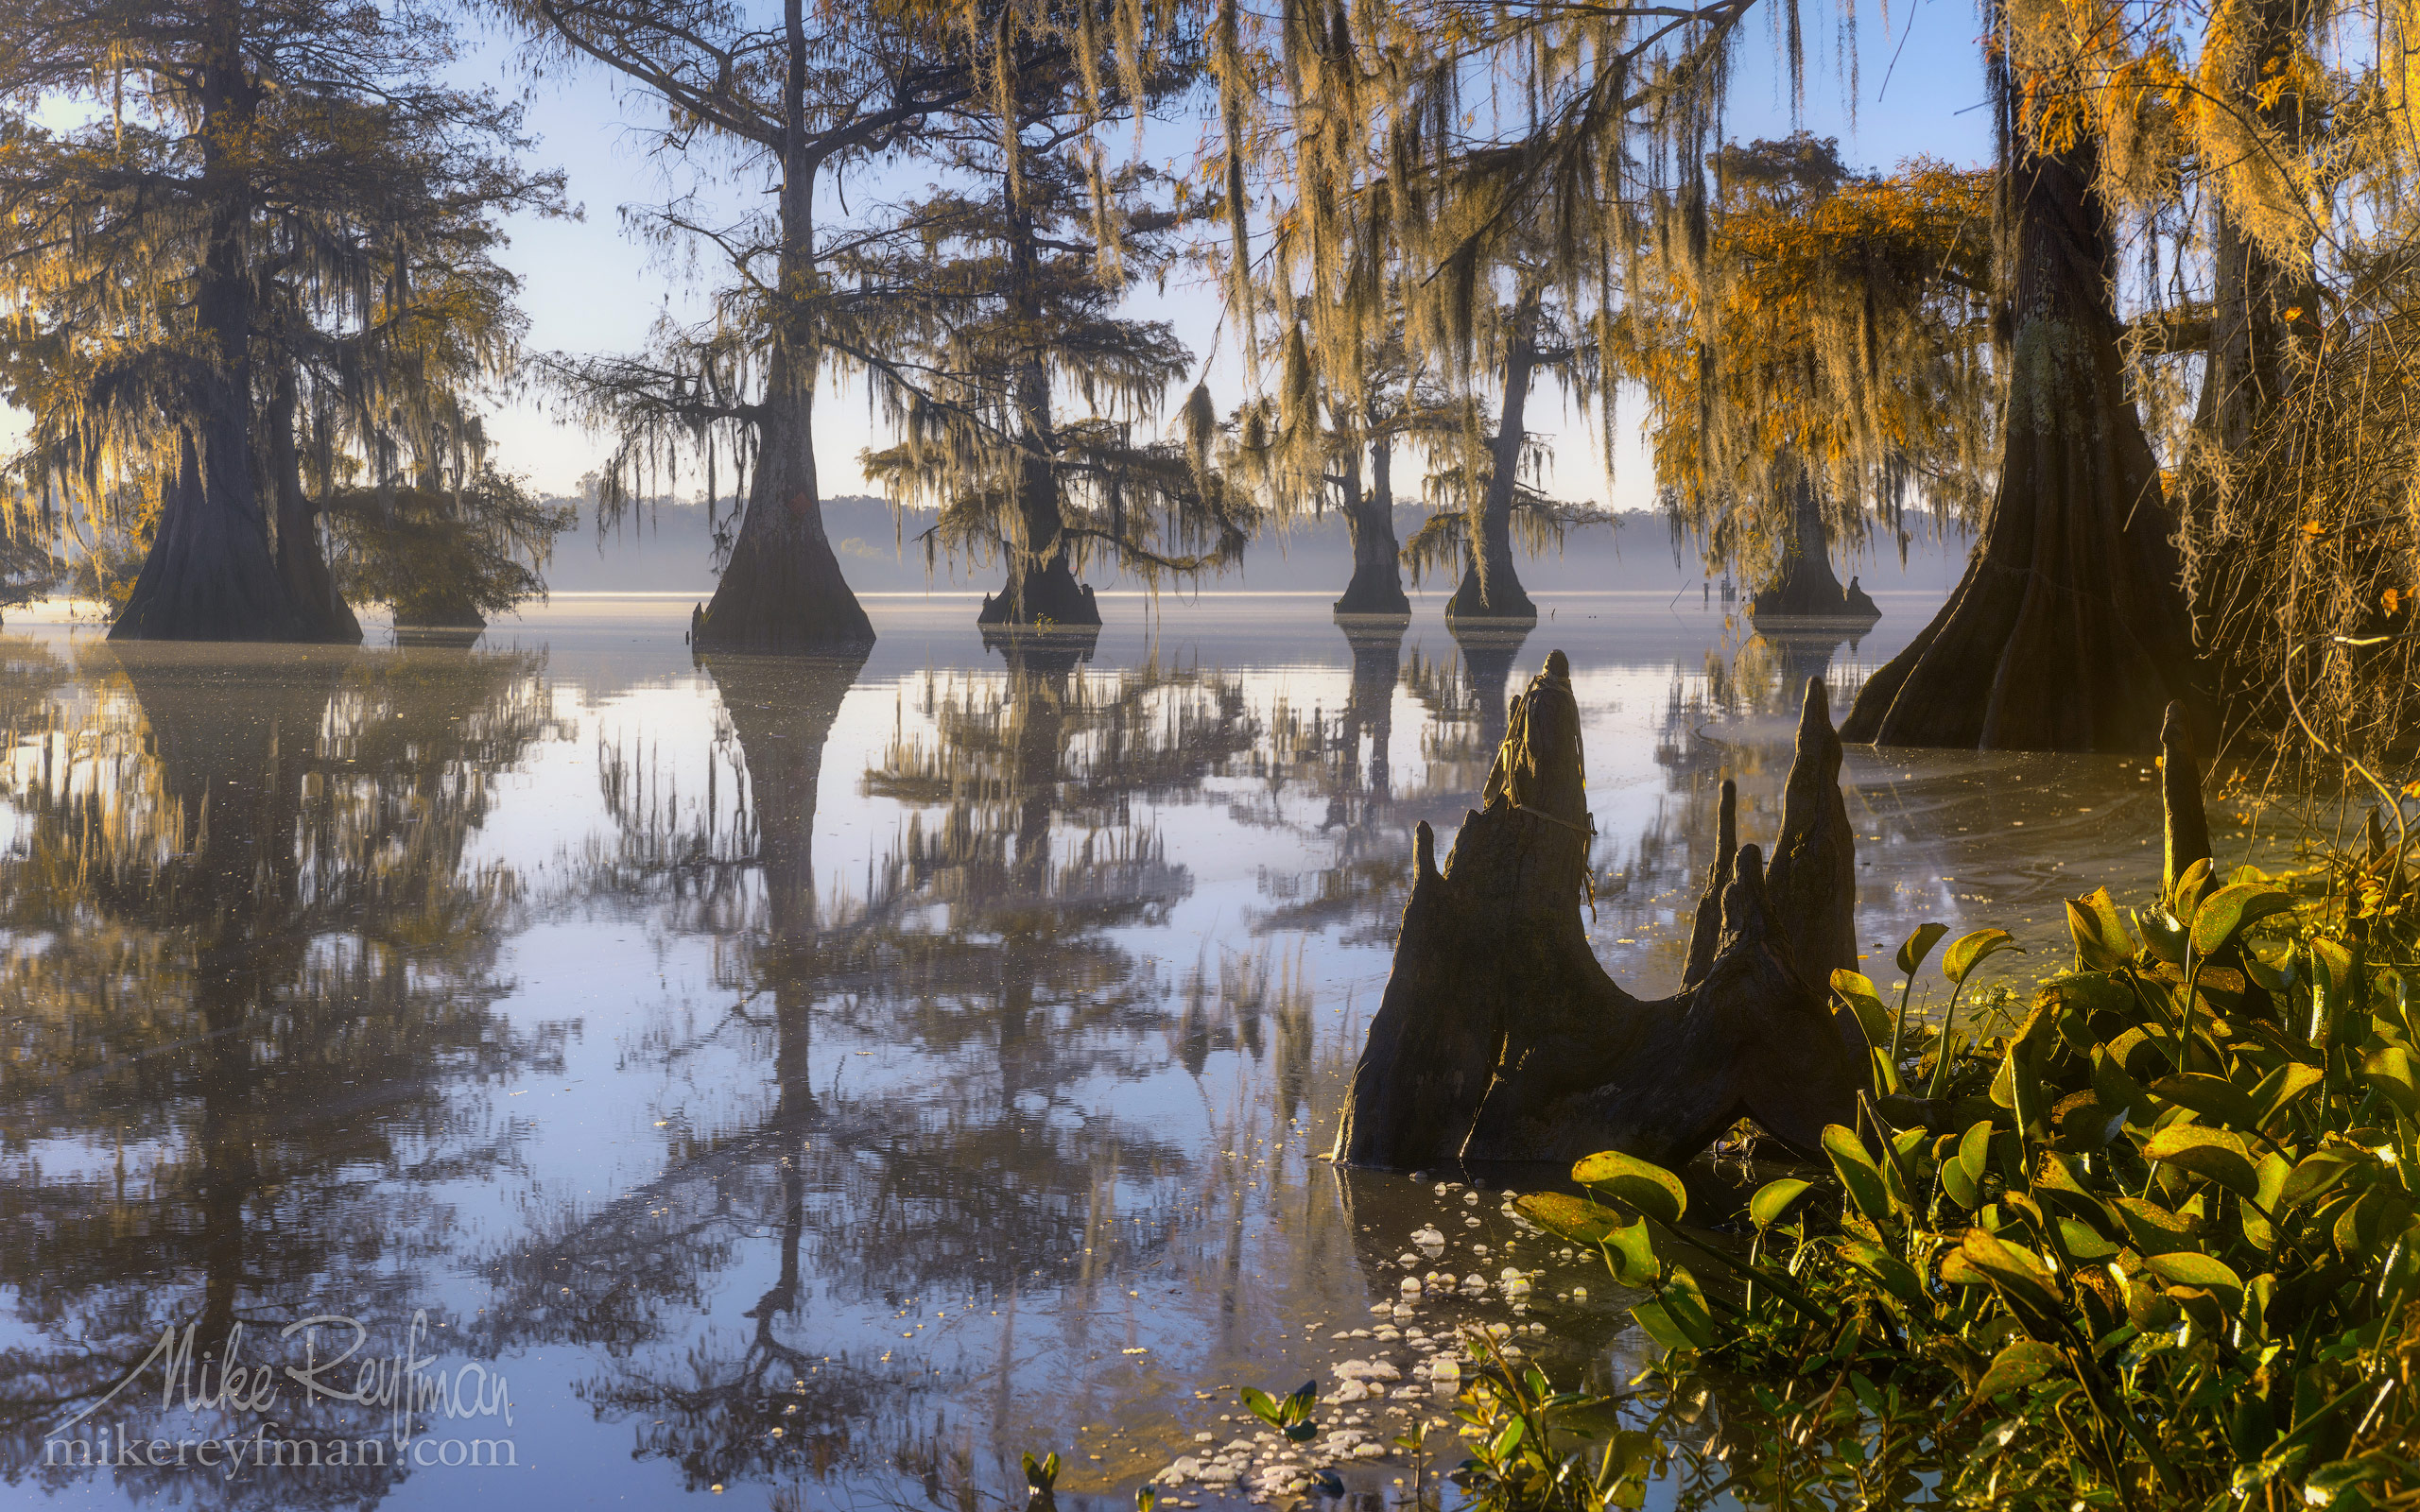 Early morning on Lake Fausse. Bald Cypress trees covered in Spanish Moss. Lake Fausse, Louisiana, US 077-LT1-50A4489.jpg - Bold Cypress and Tupelo Trees in the swamps of Atchafalaya River Basin. Caddo, Martin and Fousse Lakes. Texas/Louisiana, USA. - Mike Reyfman Photography